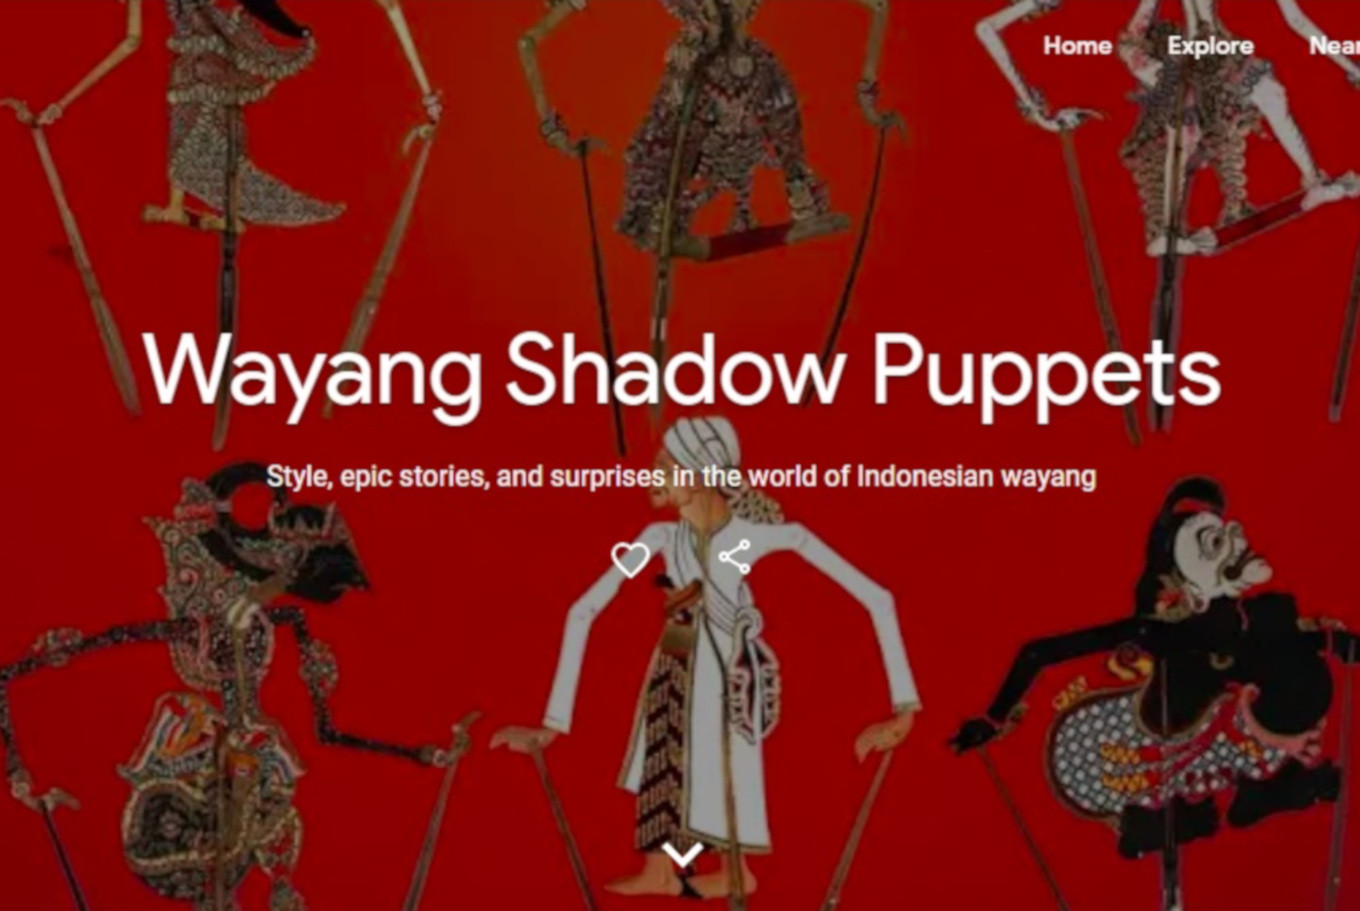 Google Arts & Culture creates special page on Indonesian 'wayang'